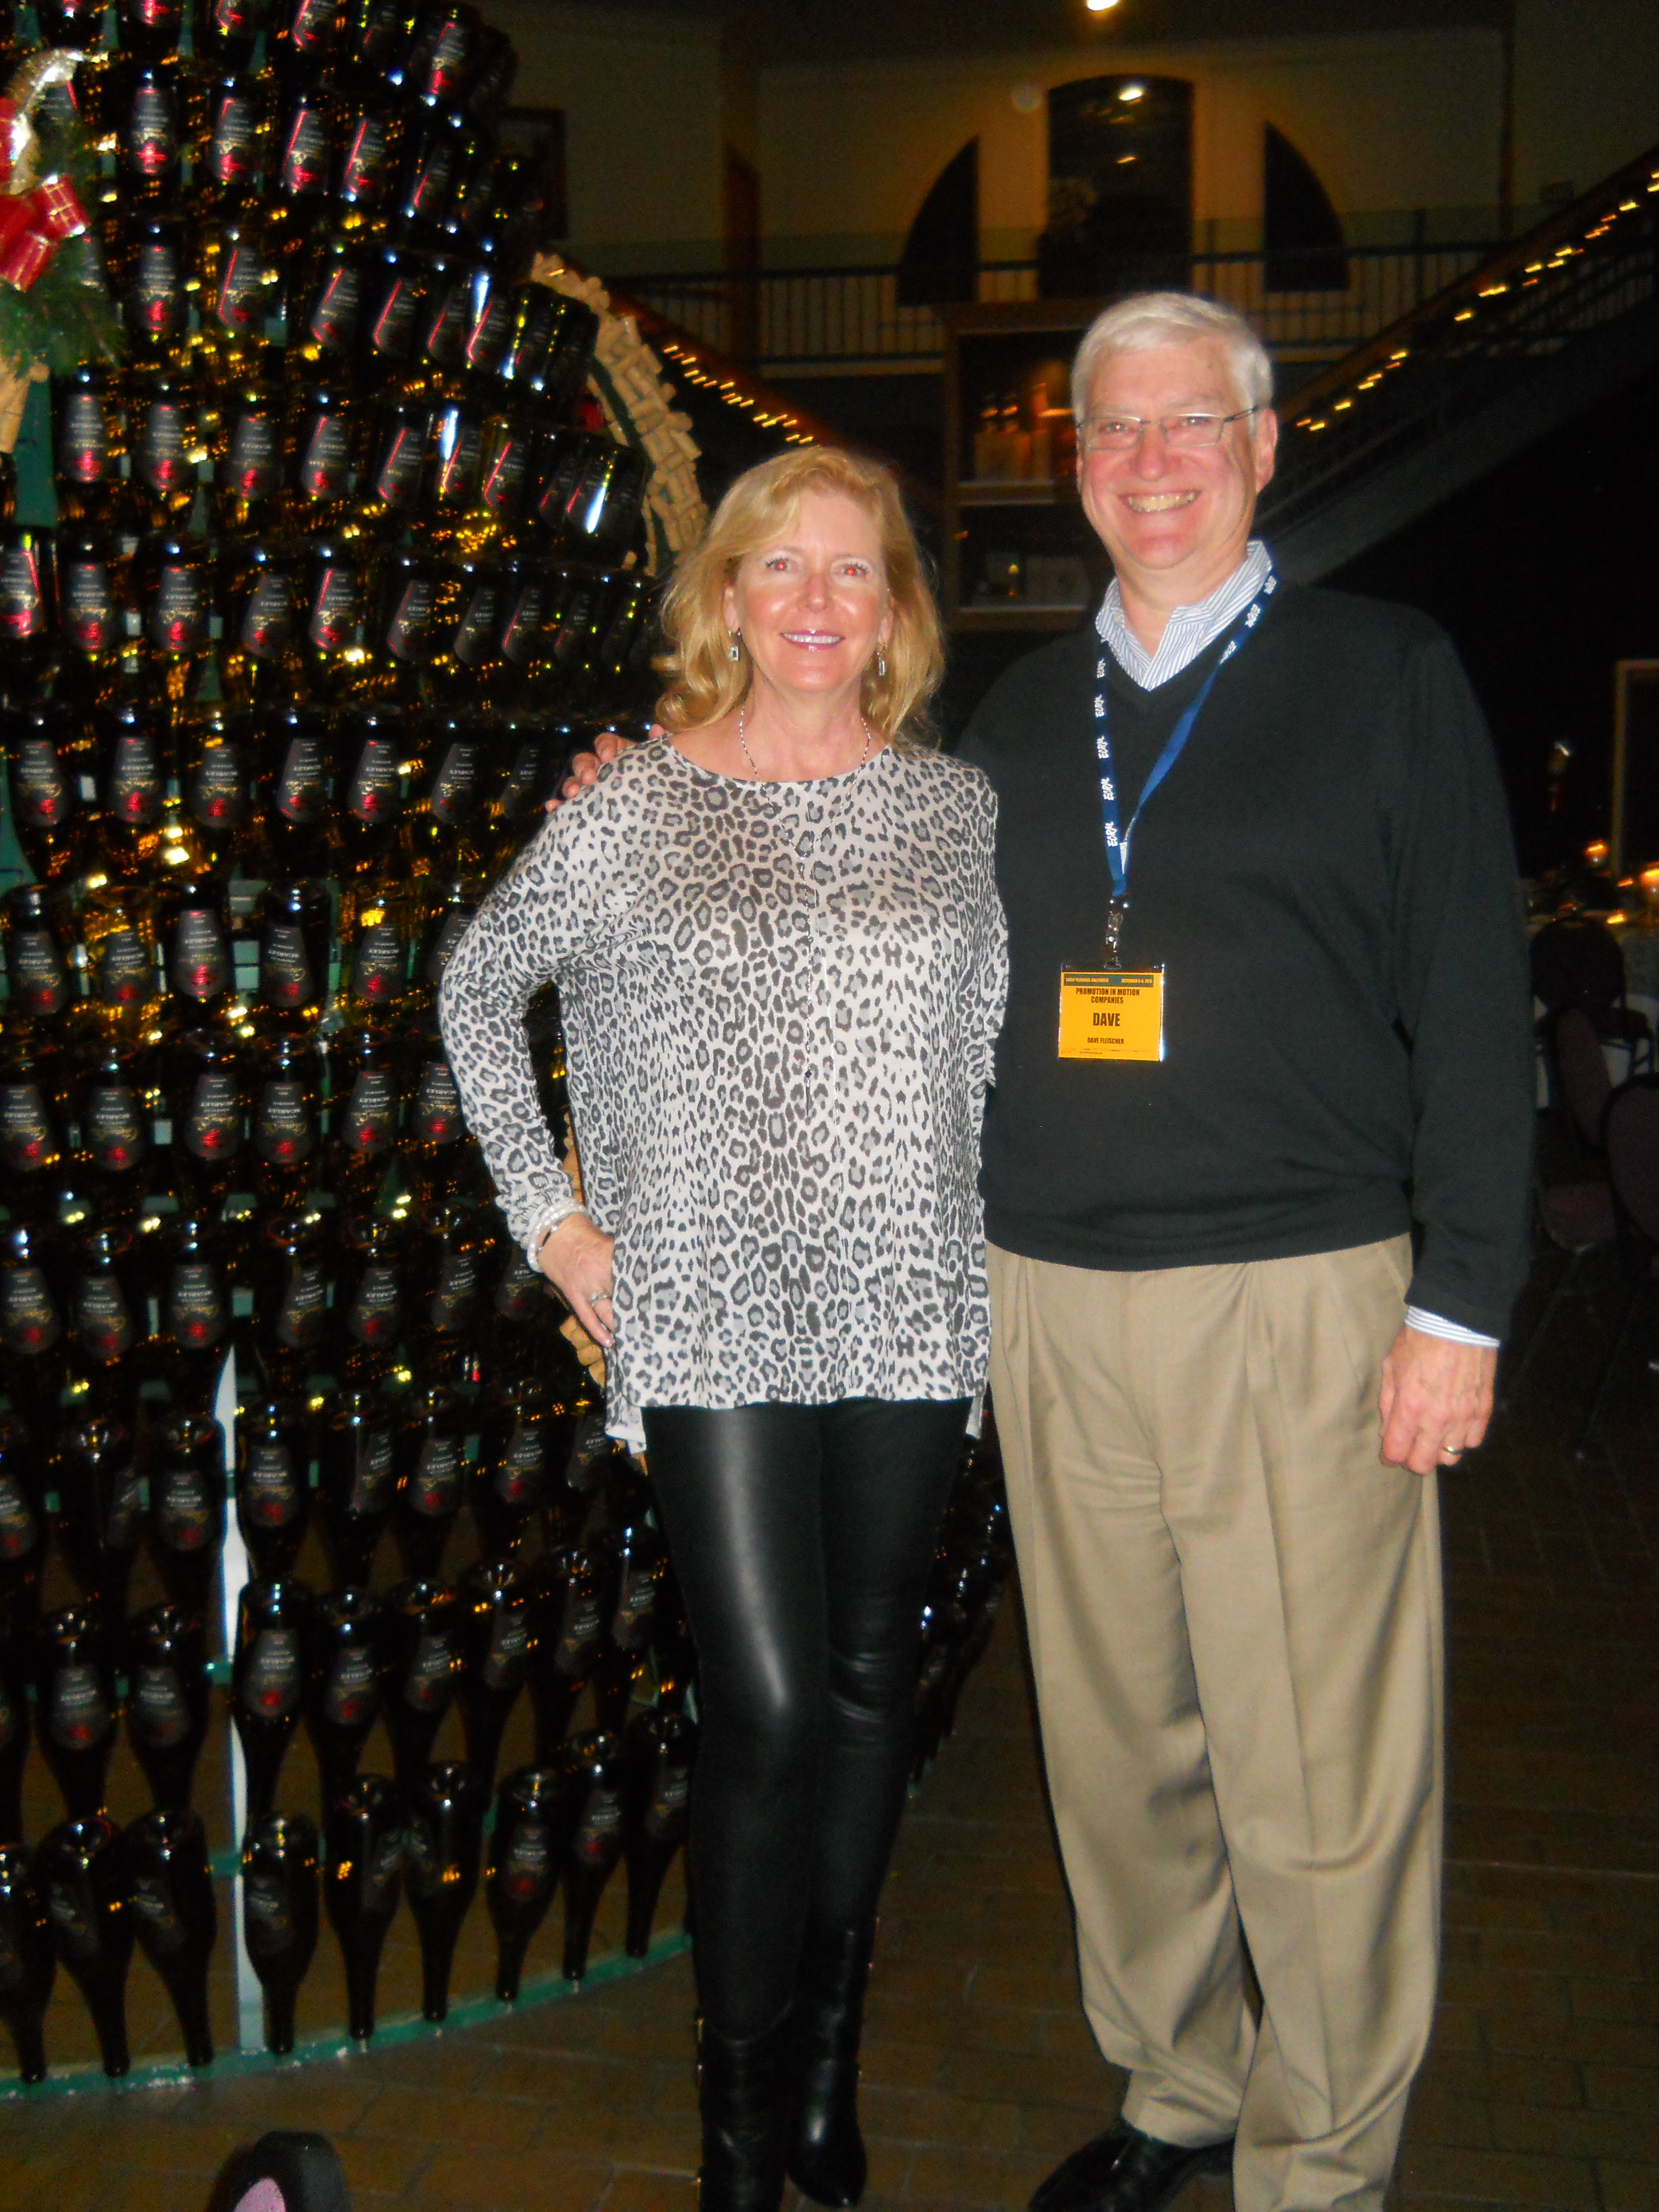 Dave Fleischer of Promotion in Motion (right) and ECRM's very own Kandi Webster pose for a picture by the tree!